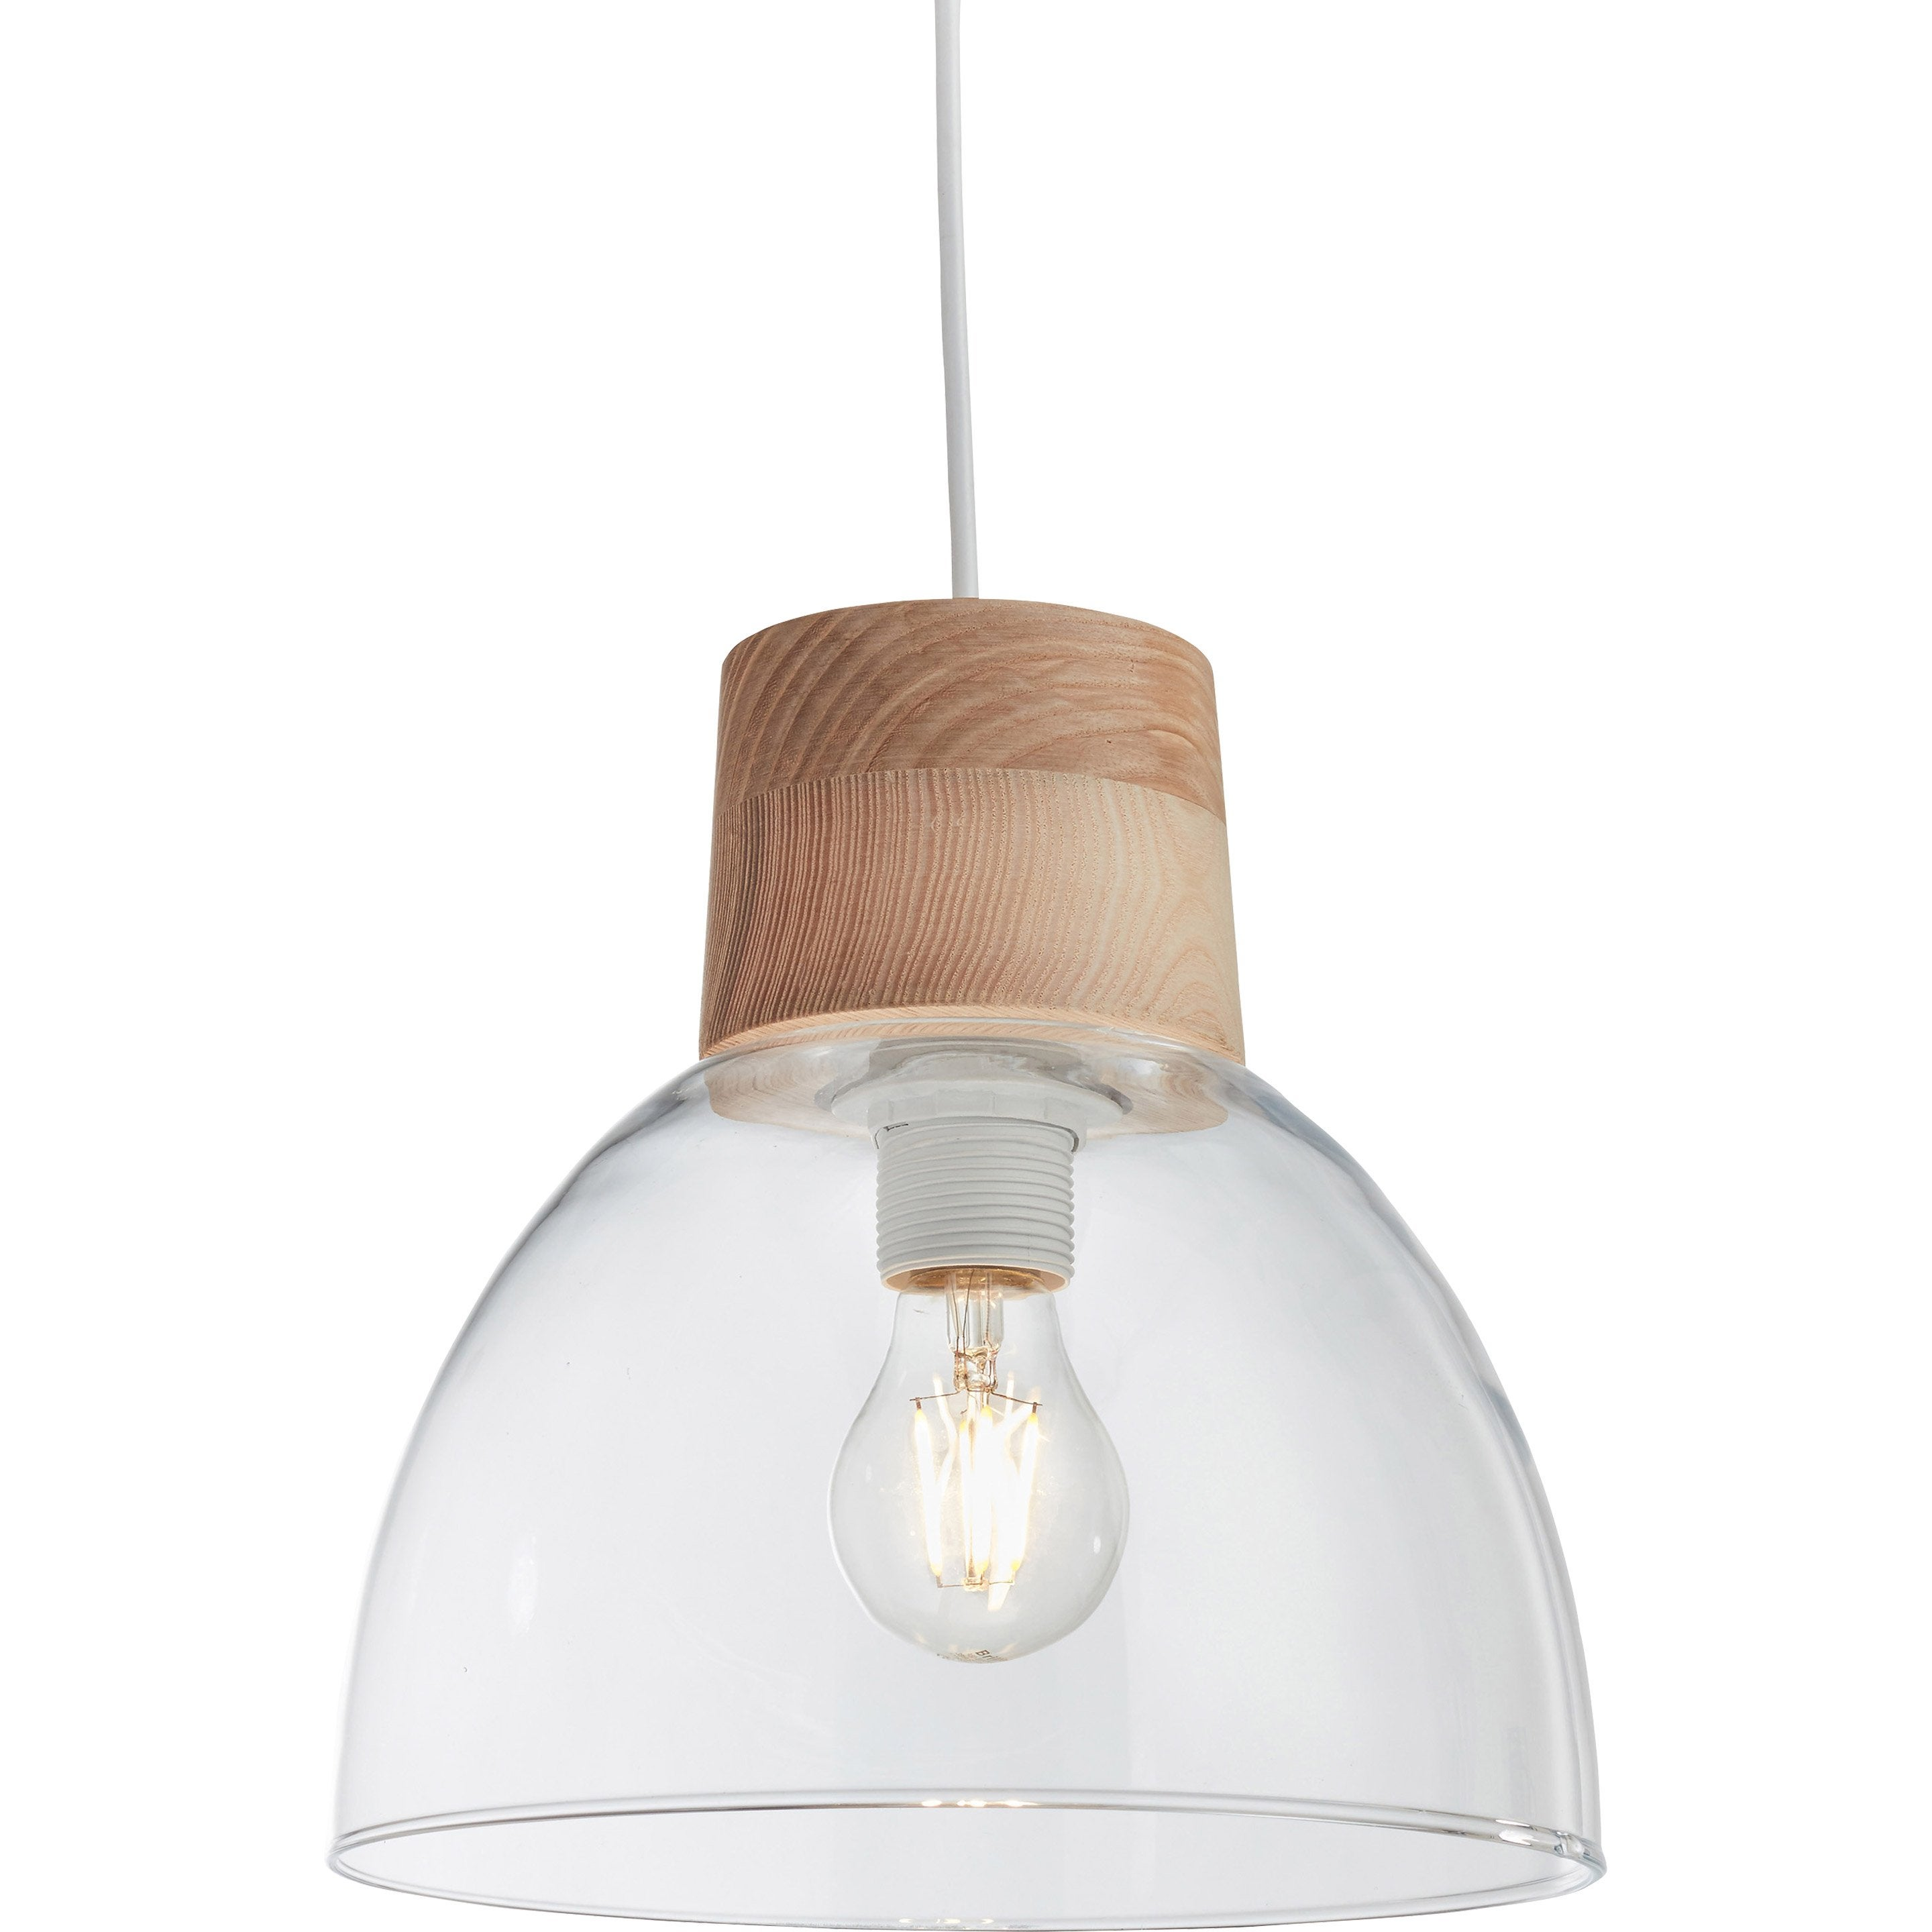 Suspension, e27 scandinave Studio Bois verre translucide 1 LUSSIOL